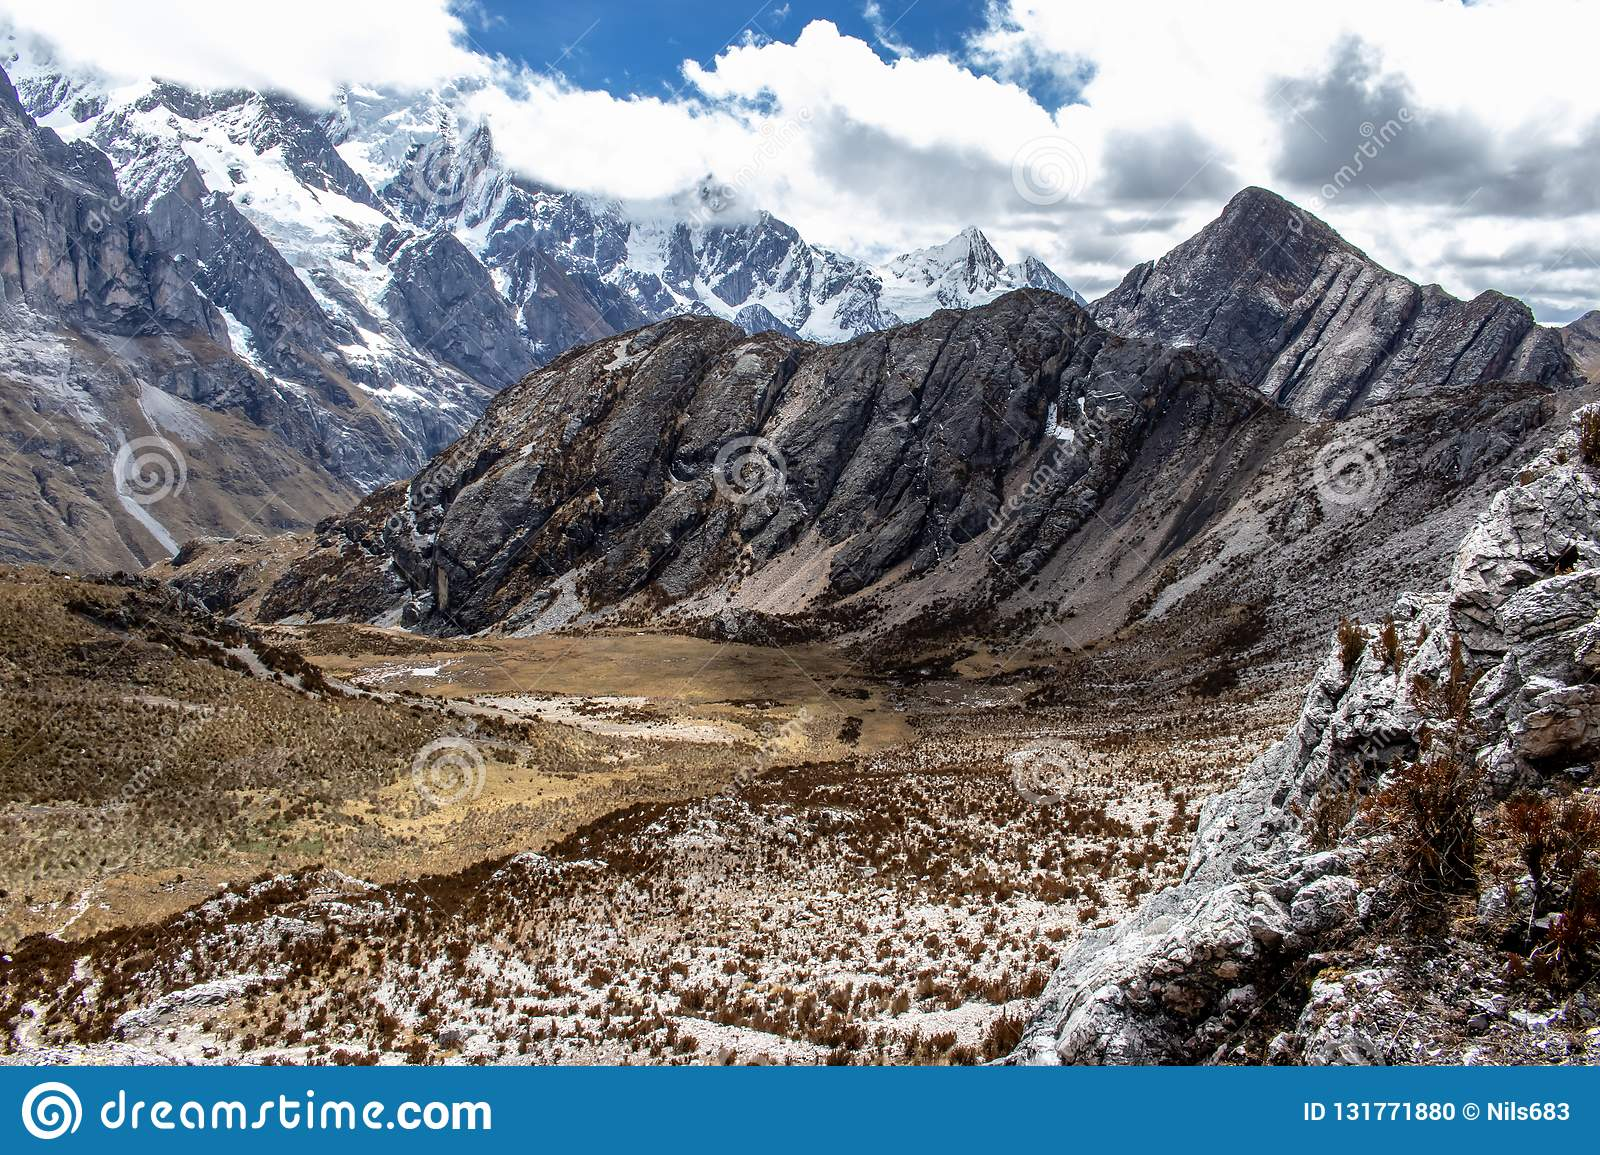 Panoramic View of mountains in the Cordillera Huayhuash, Andes Mountains, Peru